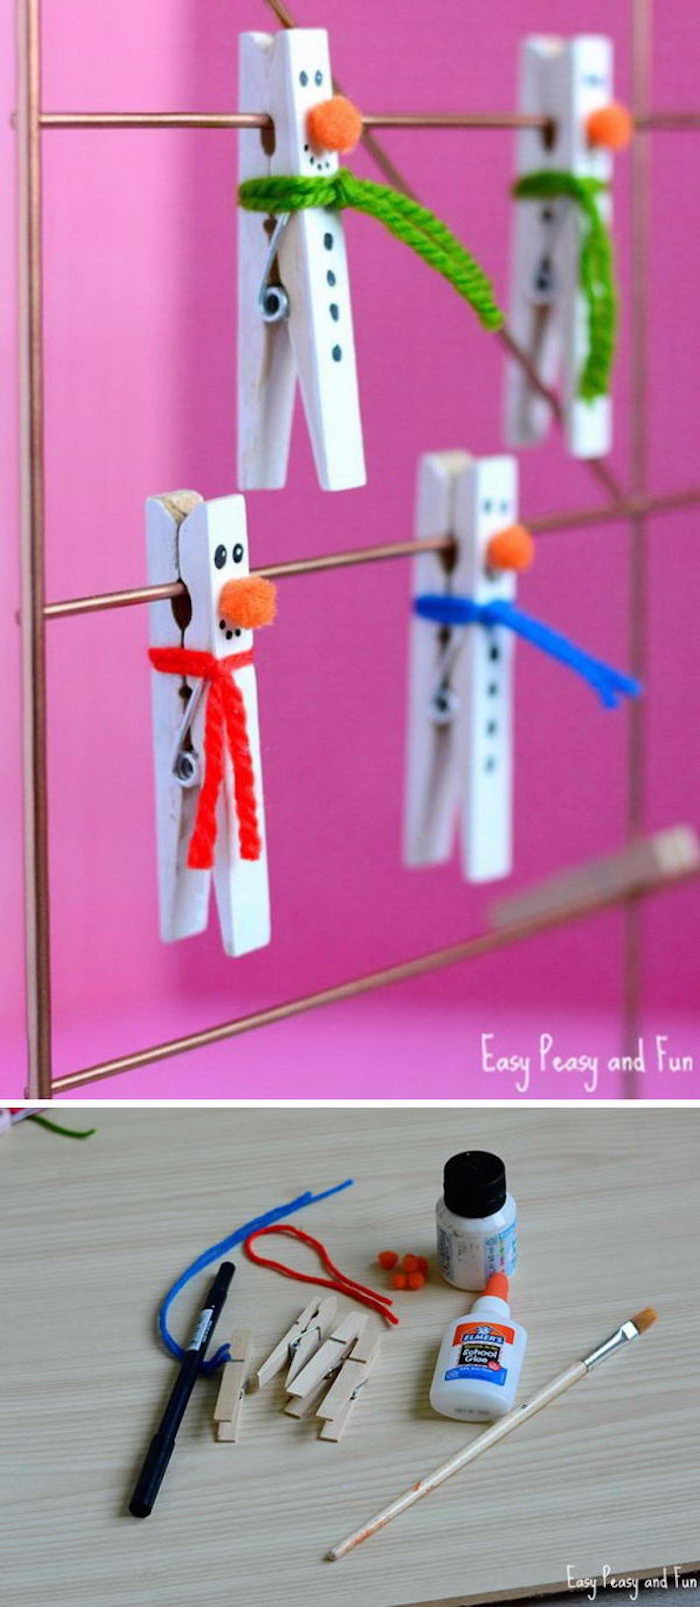 diy ornaments for kids, clothespins turned into snowmen, painted in white, yarn used for scarfs, hanging on metal rail